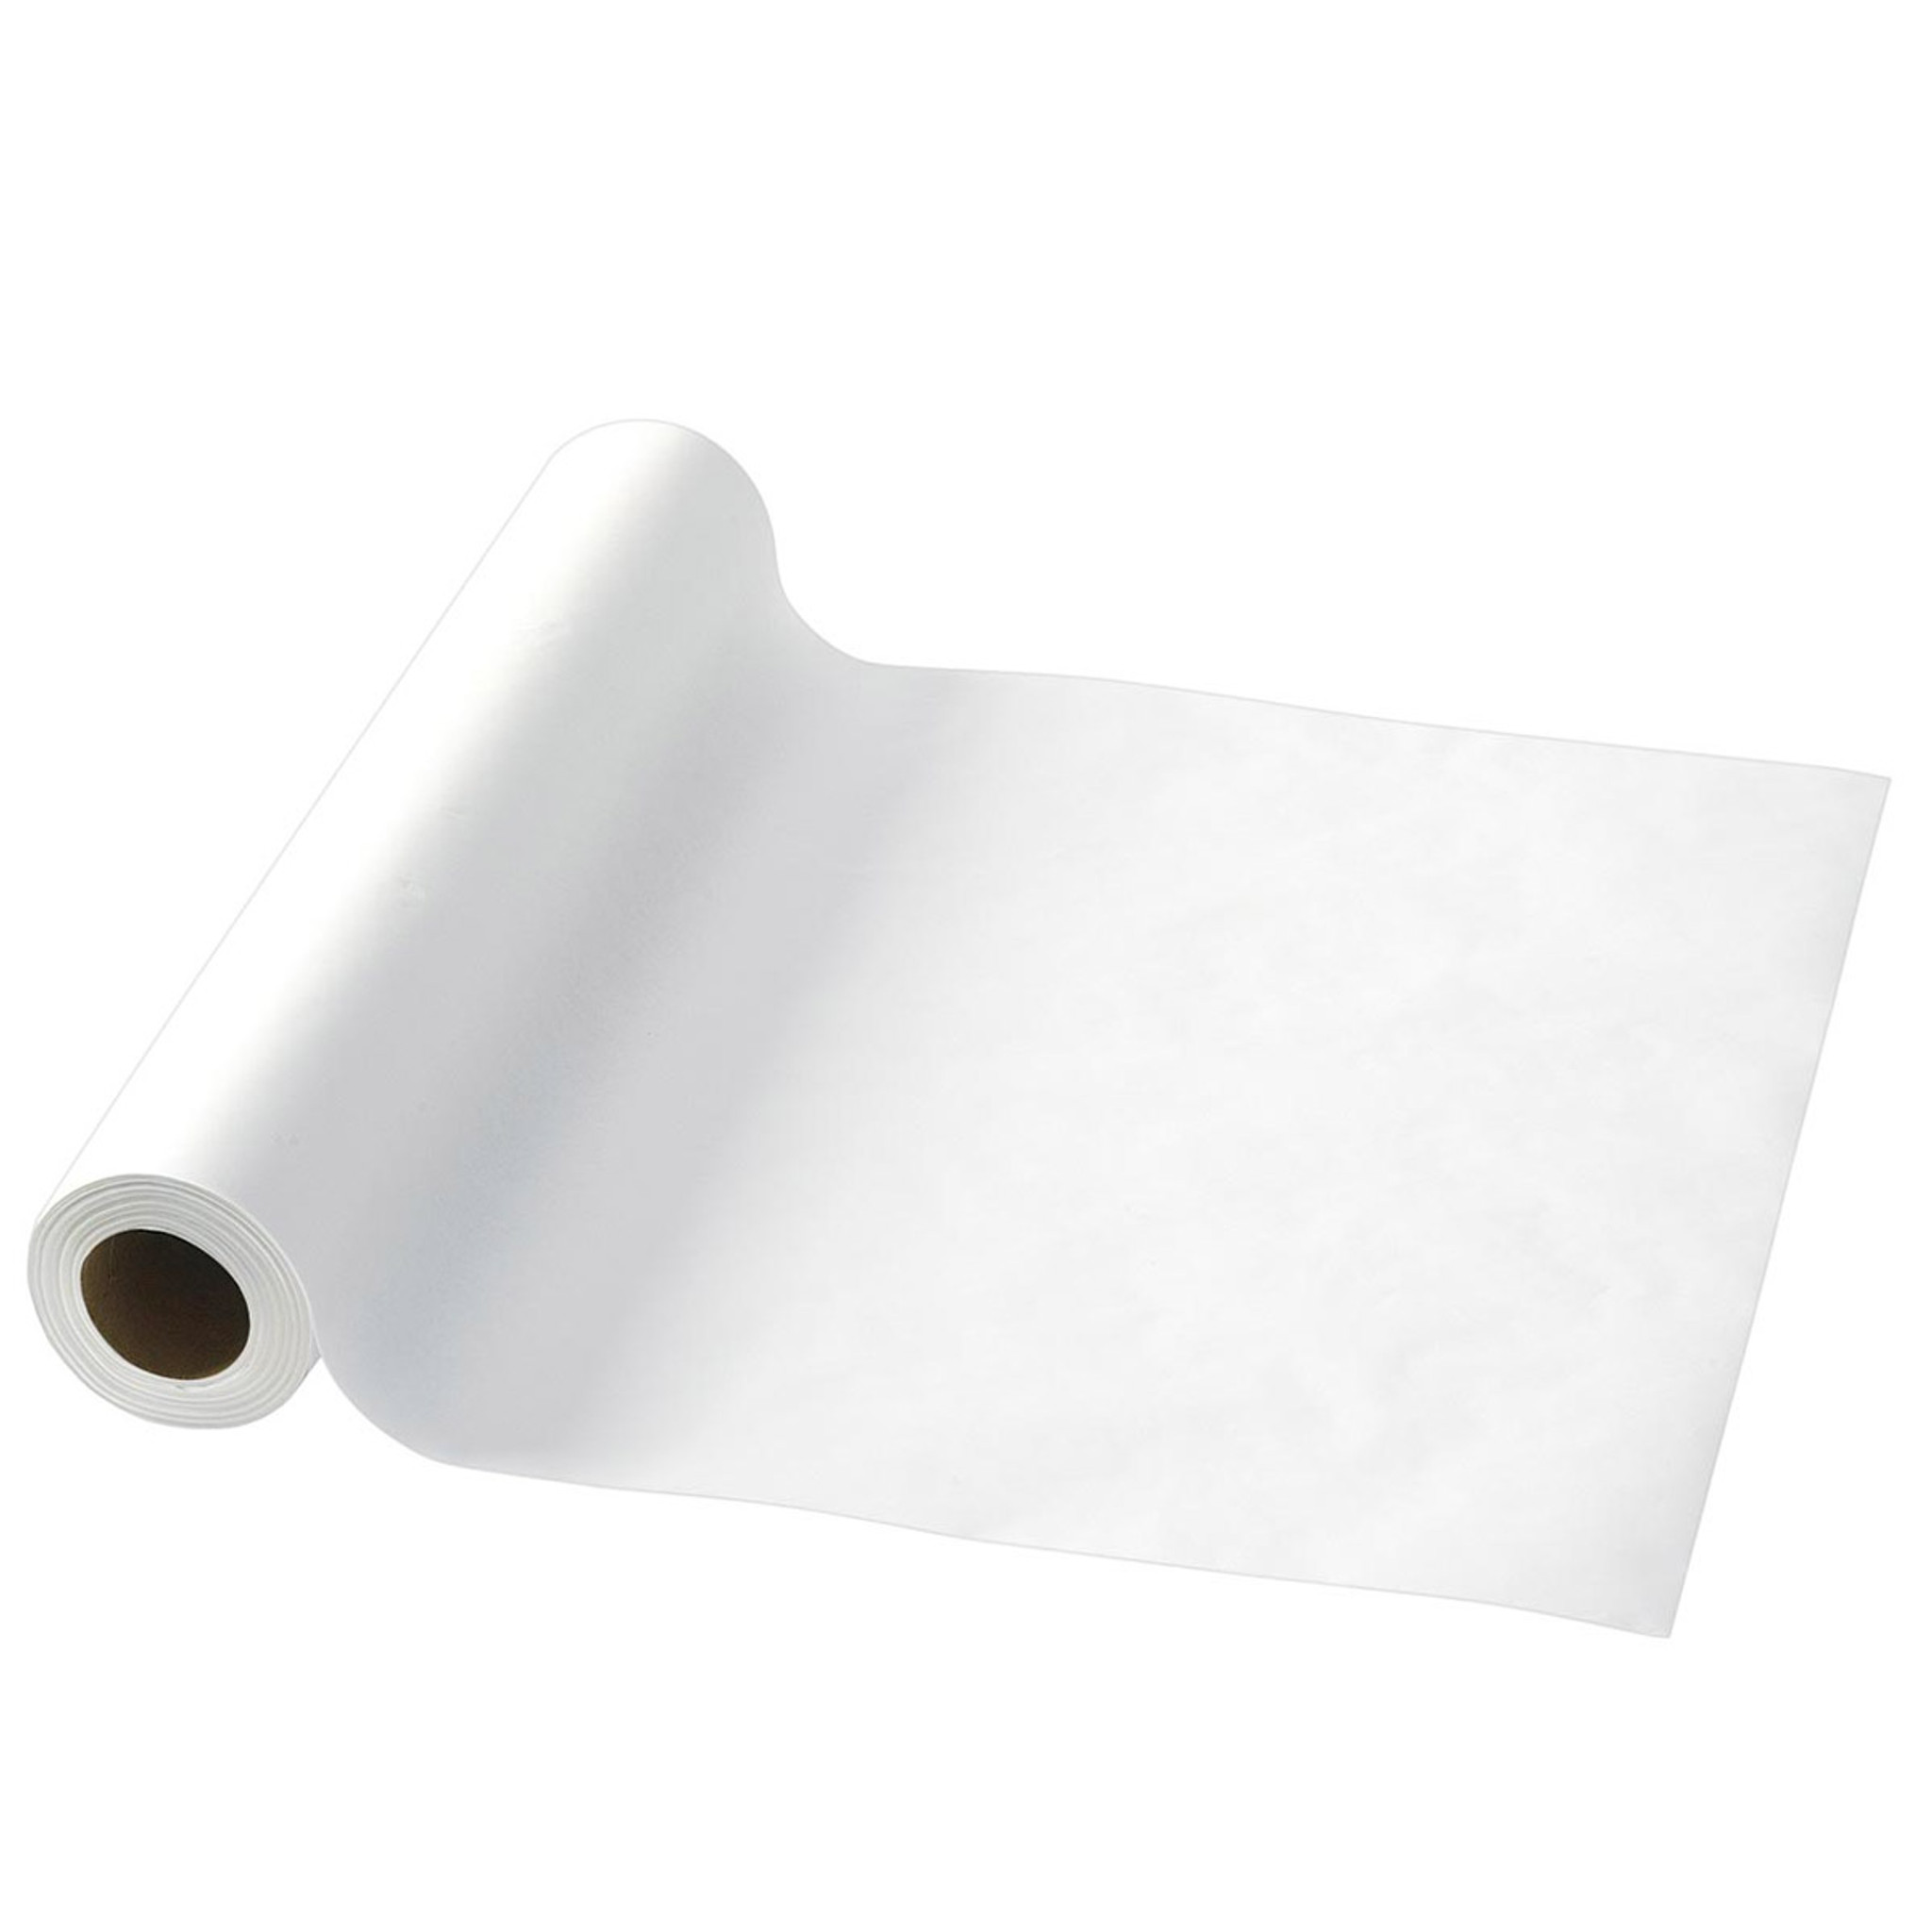 Table Paper Roll  27X225″/Ea (Box with 12 units) $6.00/Ea